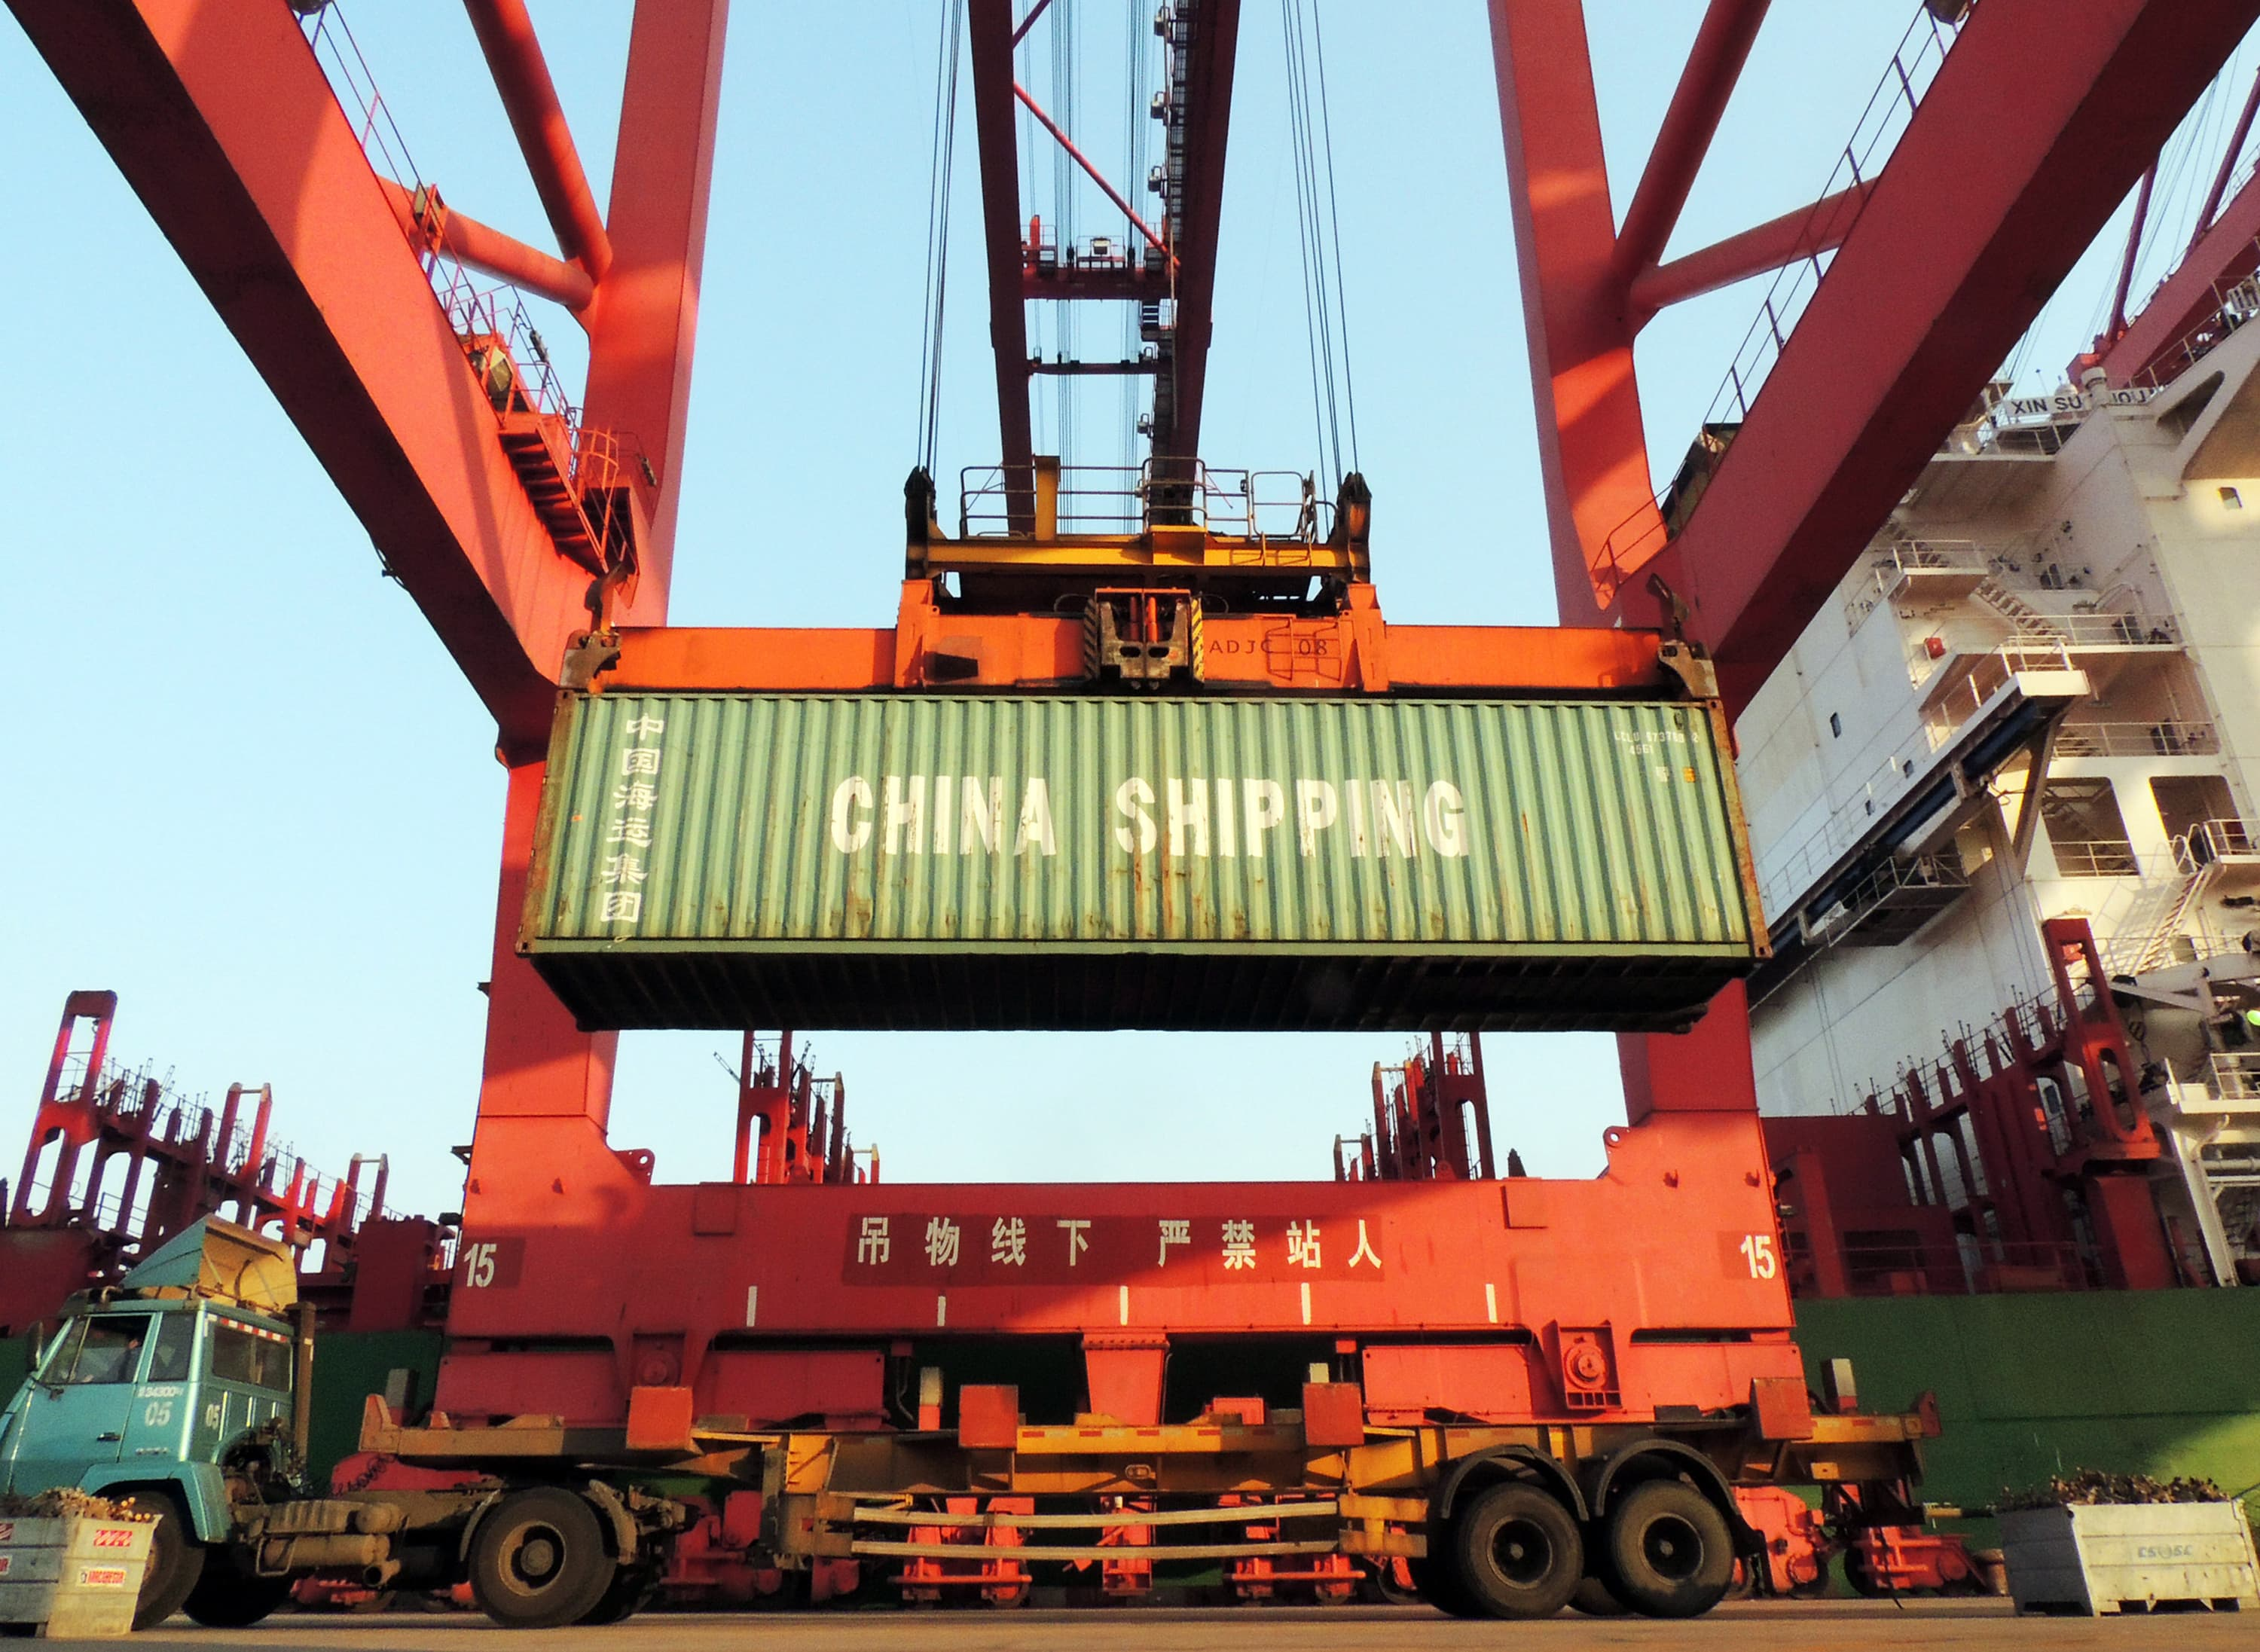 Containers are transported at a port in Lianyungang, China.